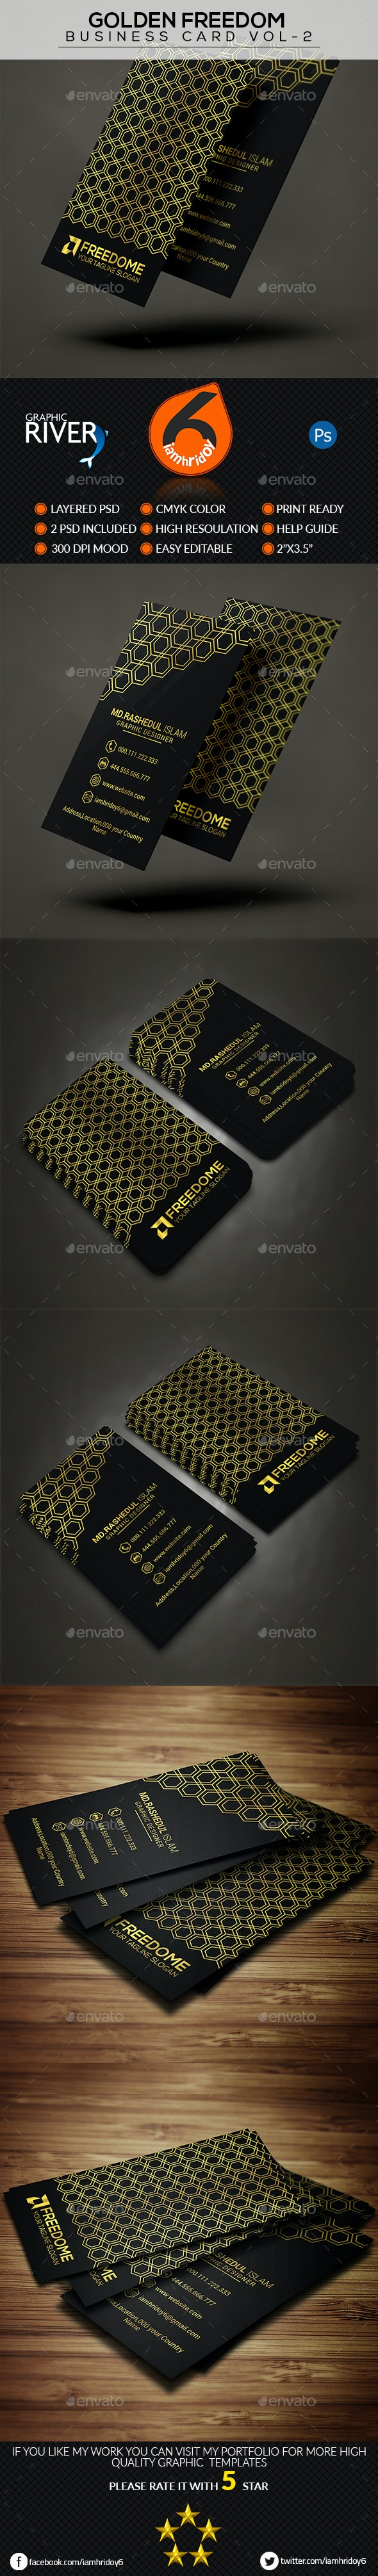 Golden Freedom Business Card Vol-2 - Business Cards Print Templates